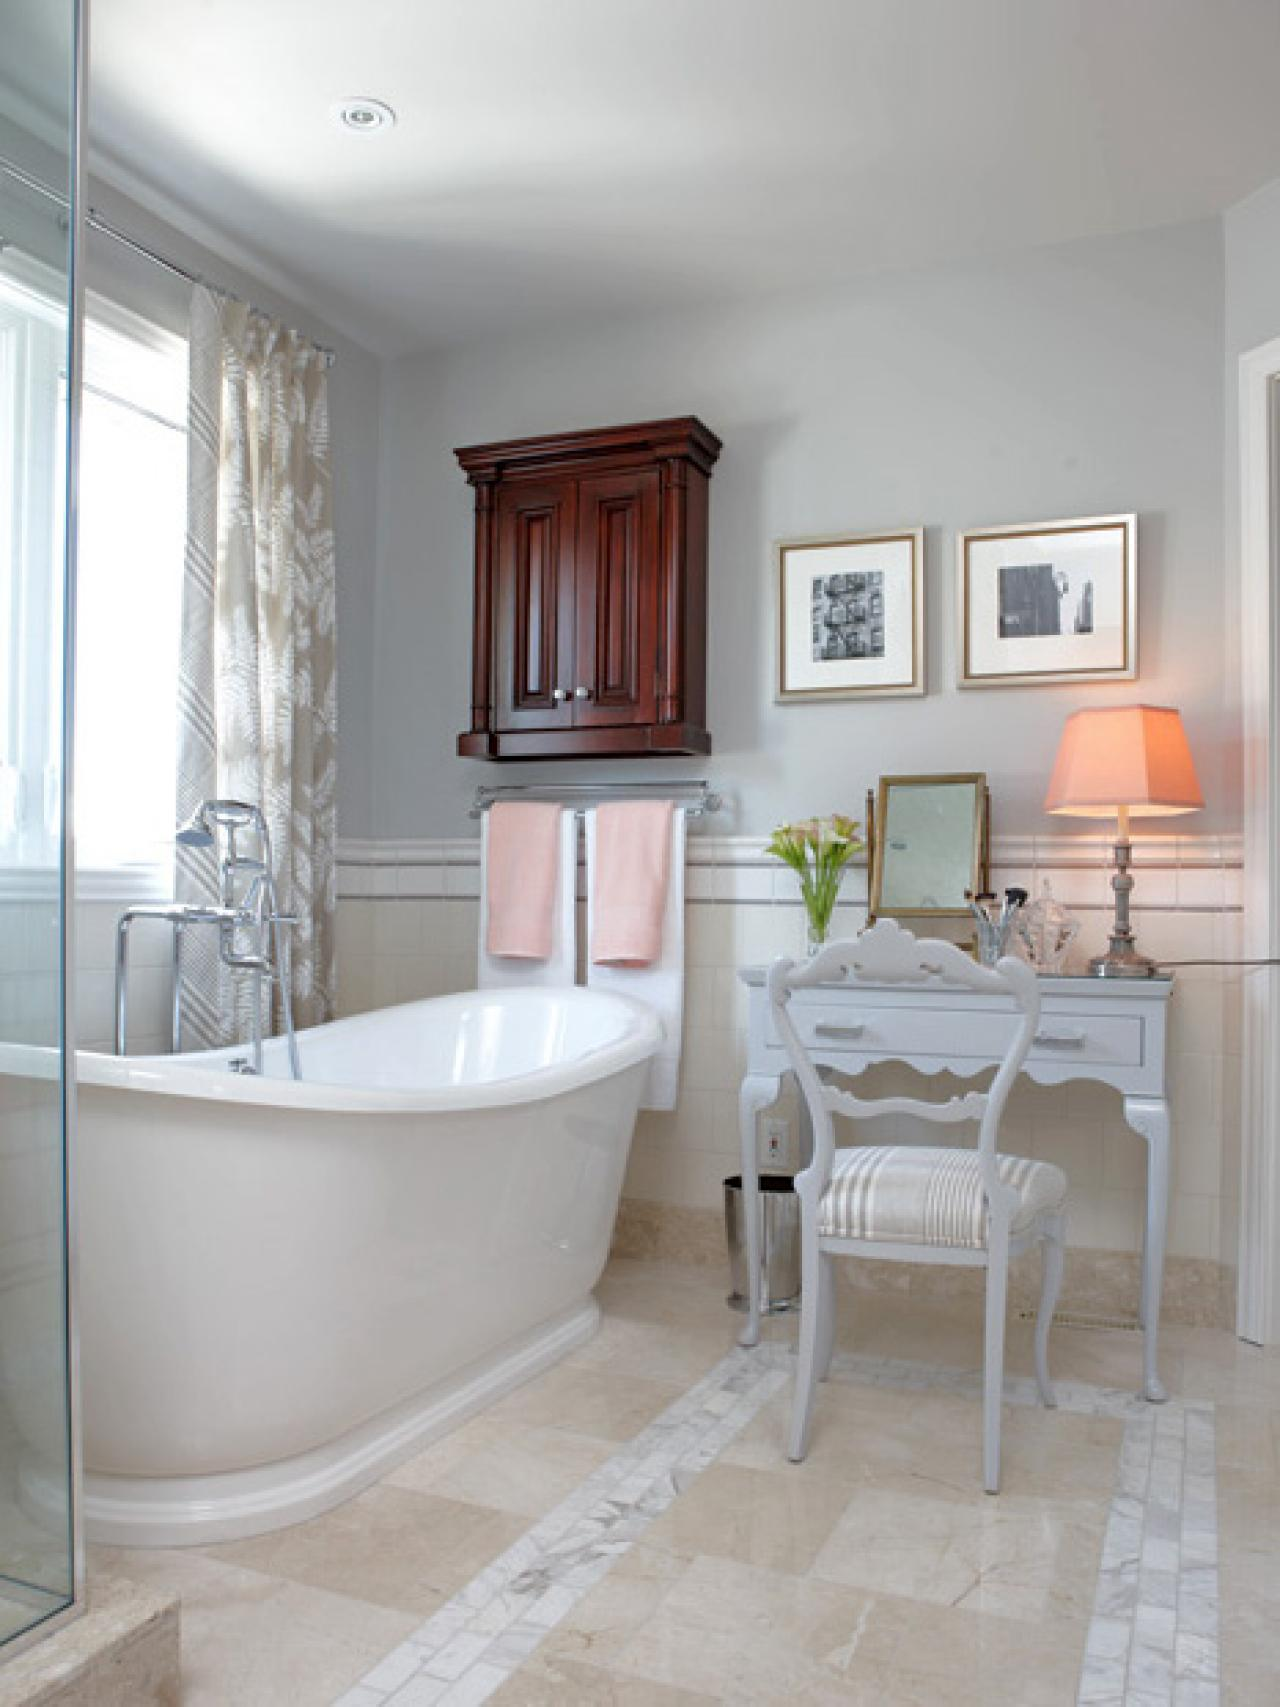 Traditional, White Bathroom